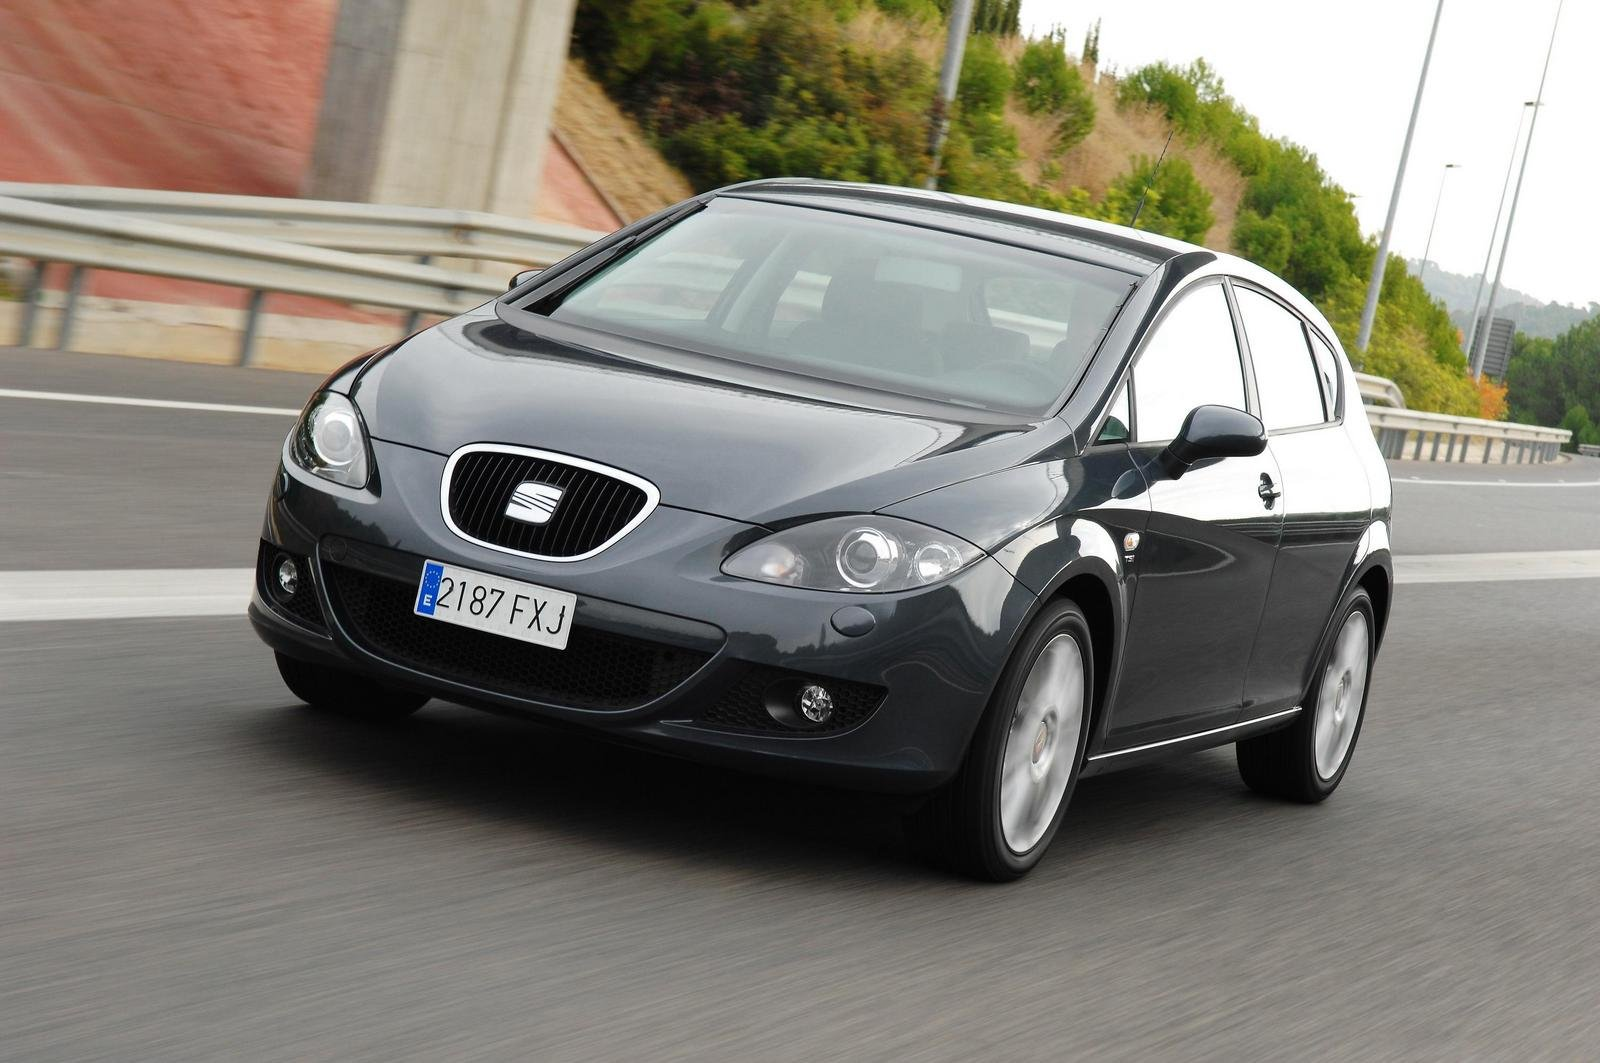 2008 seat leon 1 4 tsi review top speed. Black Bedroom Furniture Sets. Home Design Ideas